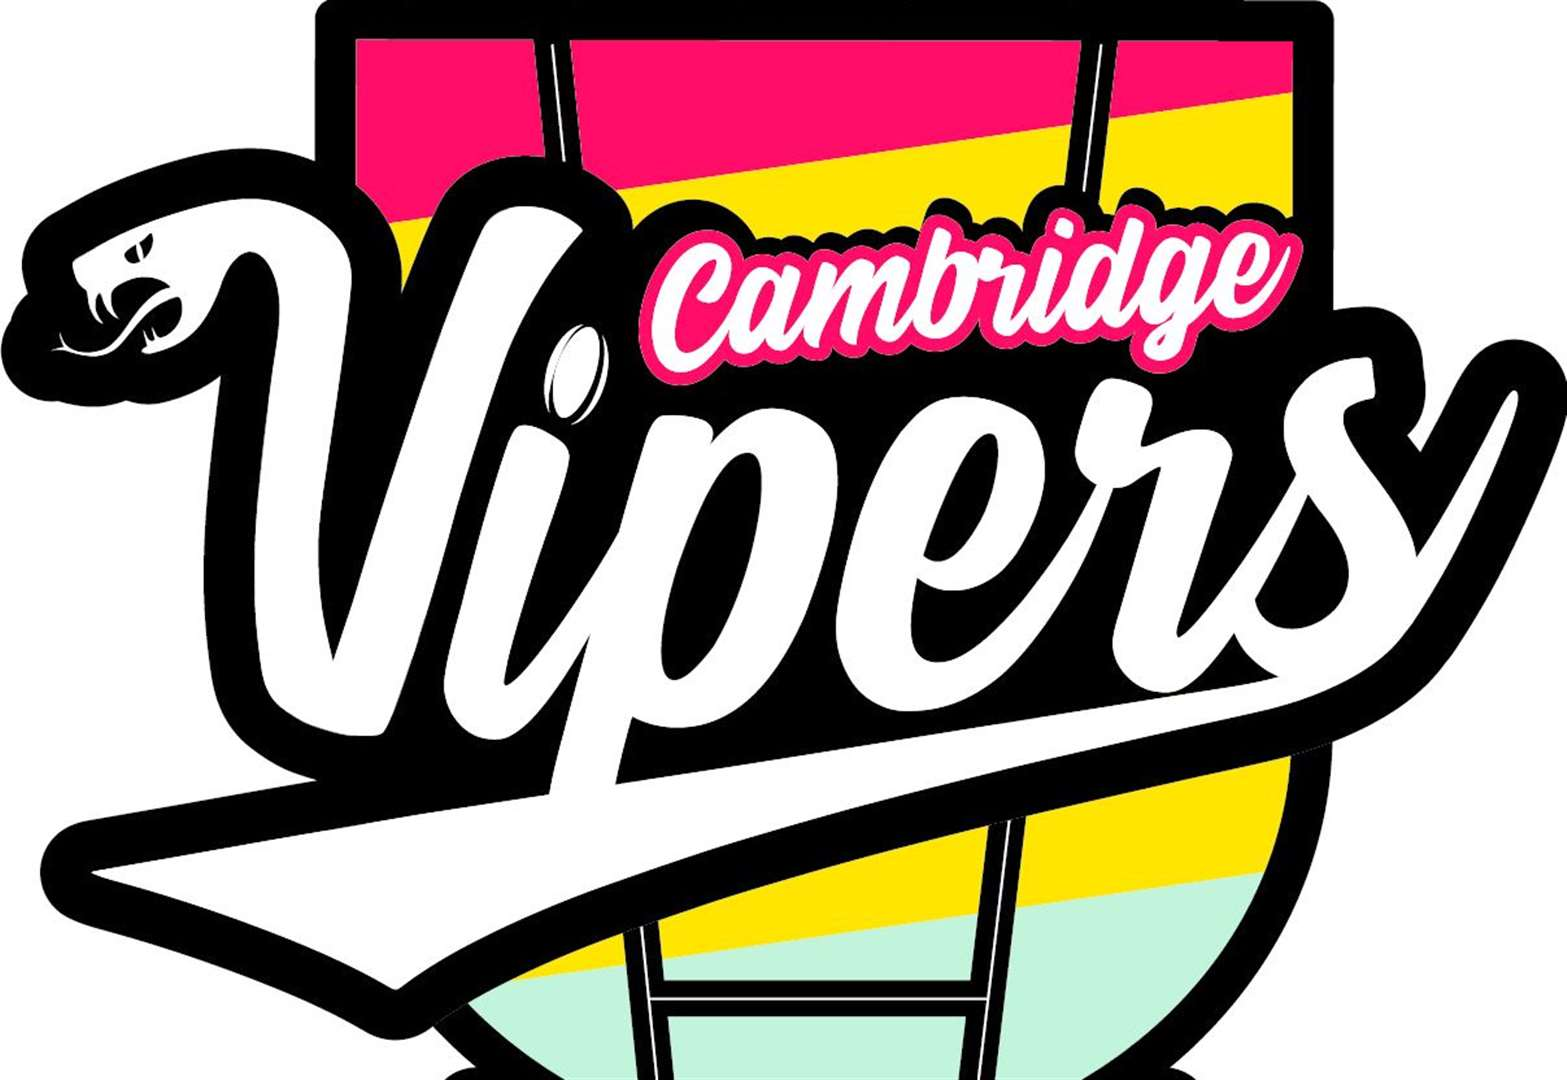 Cambridge Rugby Club academy to have Vipers brand